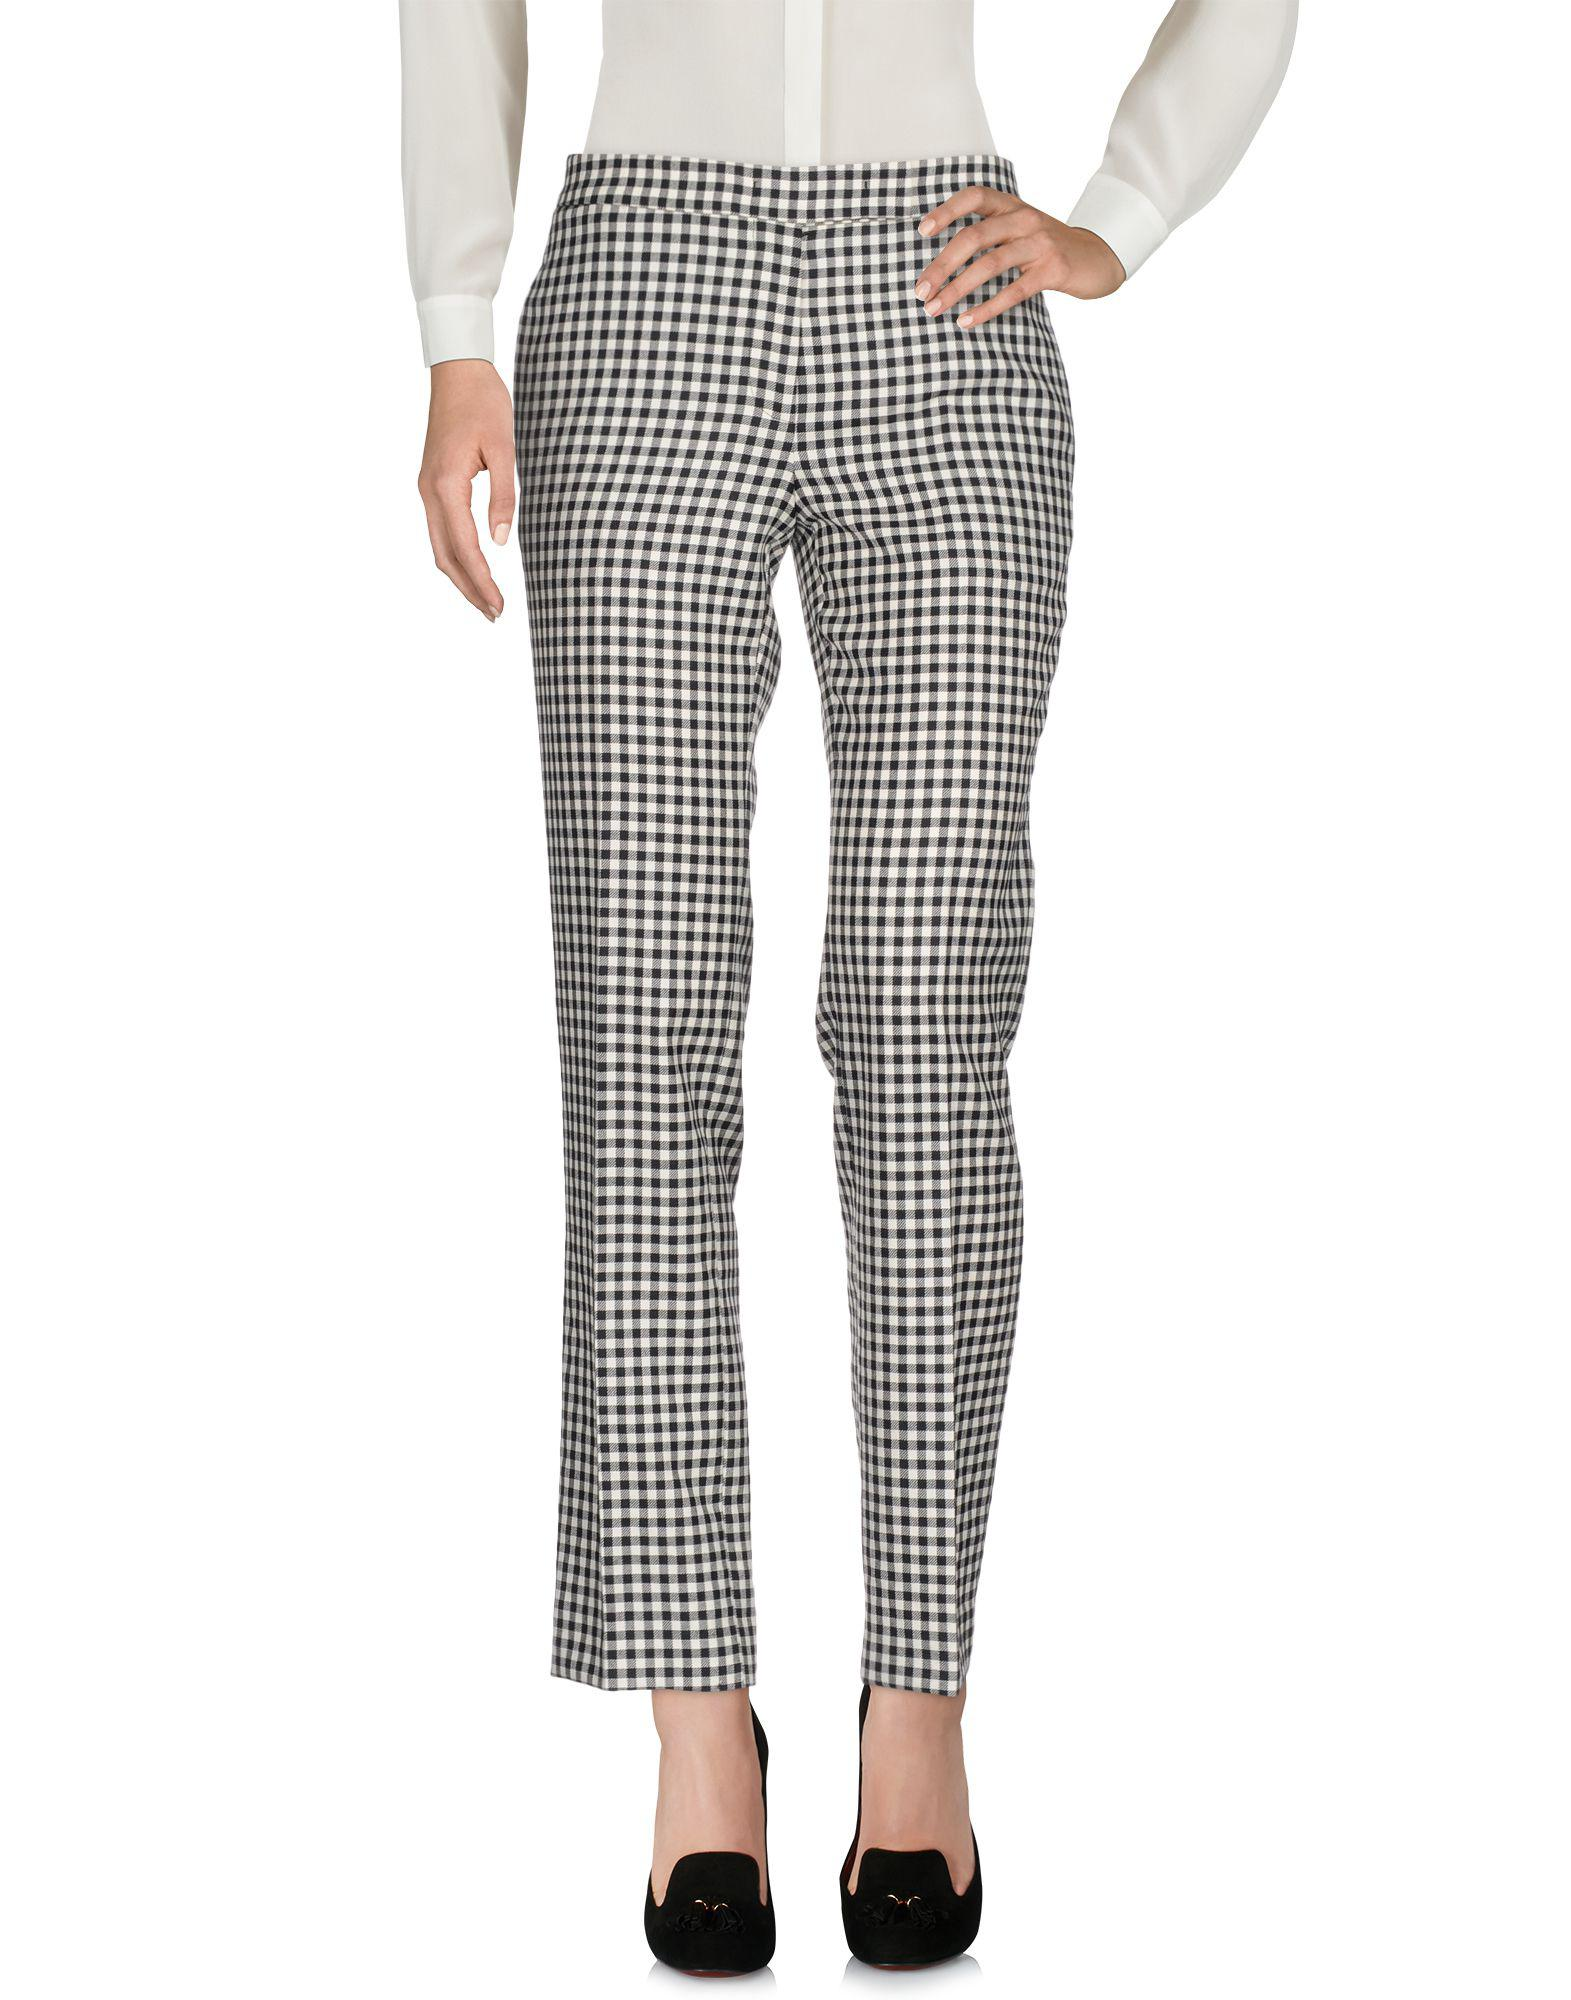 TROUSERS - Casual trousers Rossella Jardini LUr4Oodkh